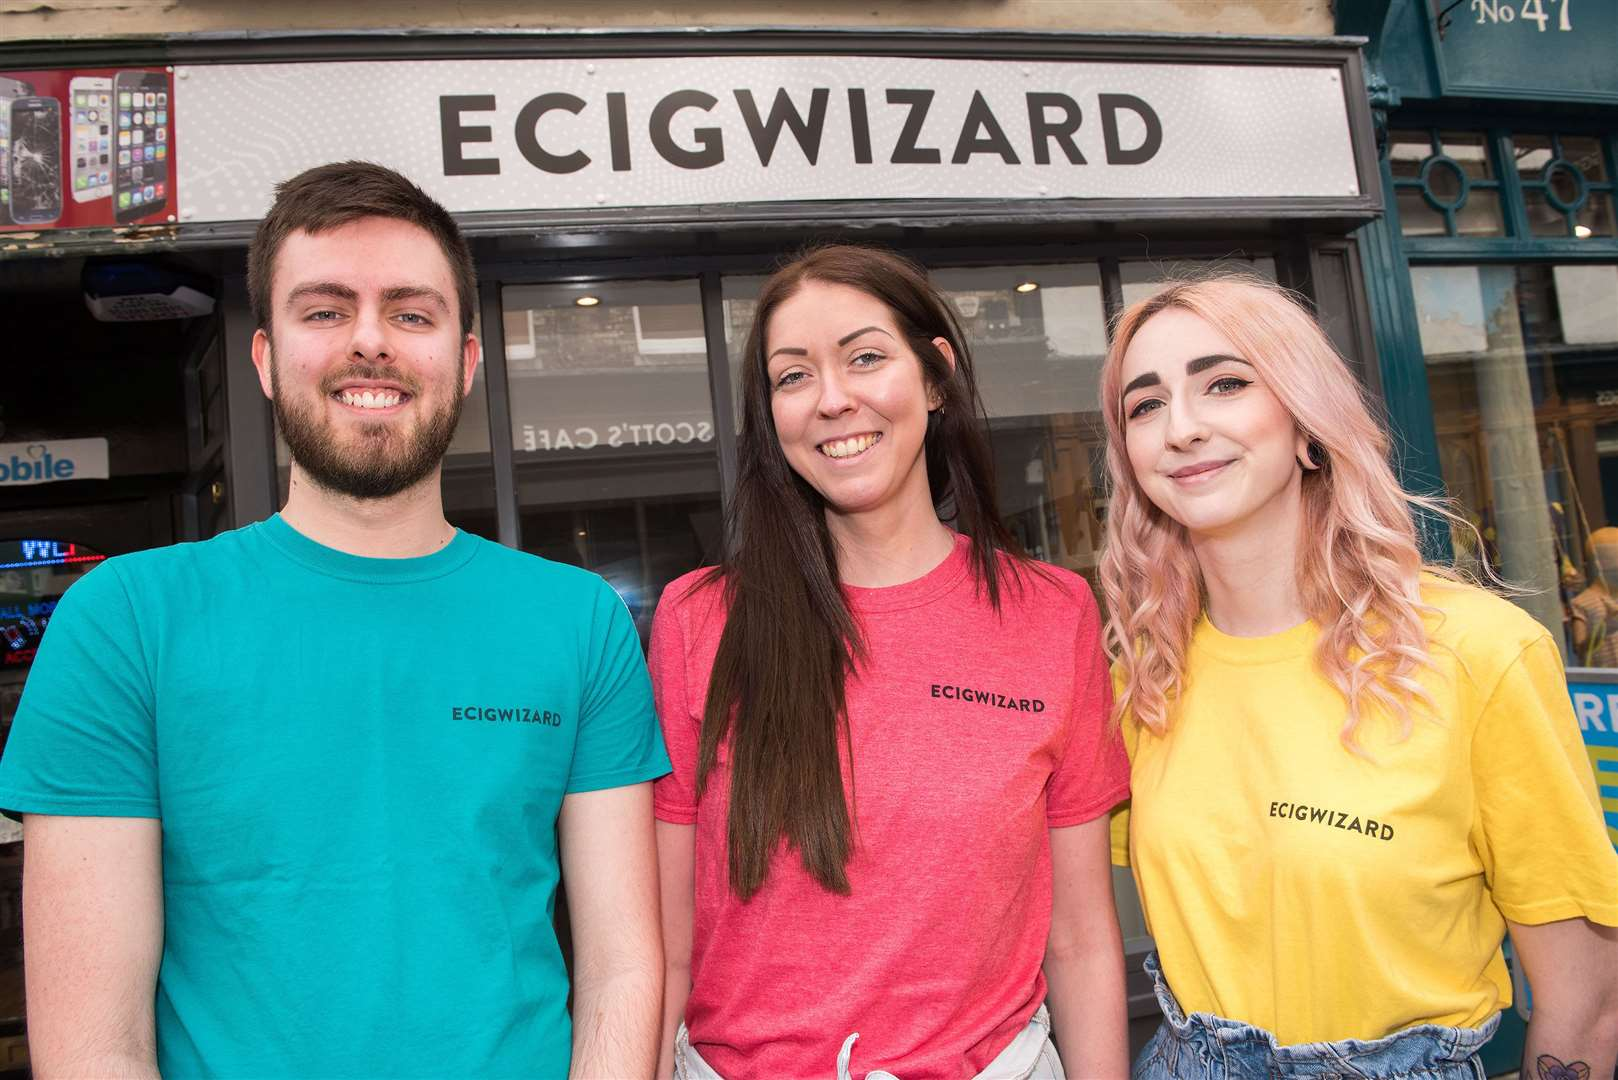 Vape shop.Ecigwizard, Abbeygate St, Bury Saint Edmunds Max Cornish, Lucy Smith manager and Yas Murr..For a Love Local feature we're speaking to a few shop types bucking the national trend by thriving as others close. One of these is E Cig Wizard in bury St Edmunds. Picture by Mark Westley. (9146341)